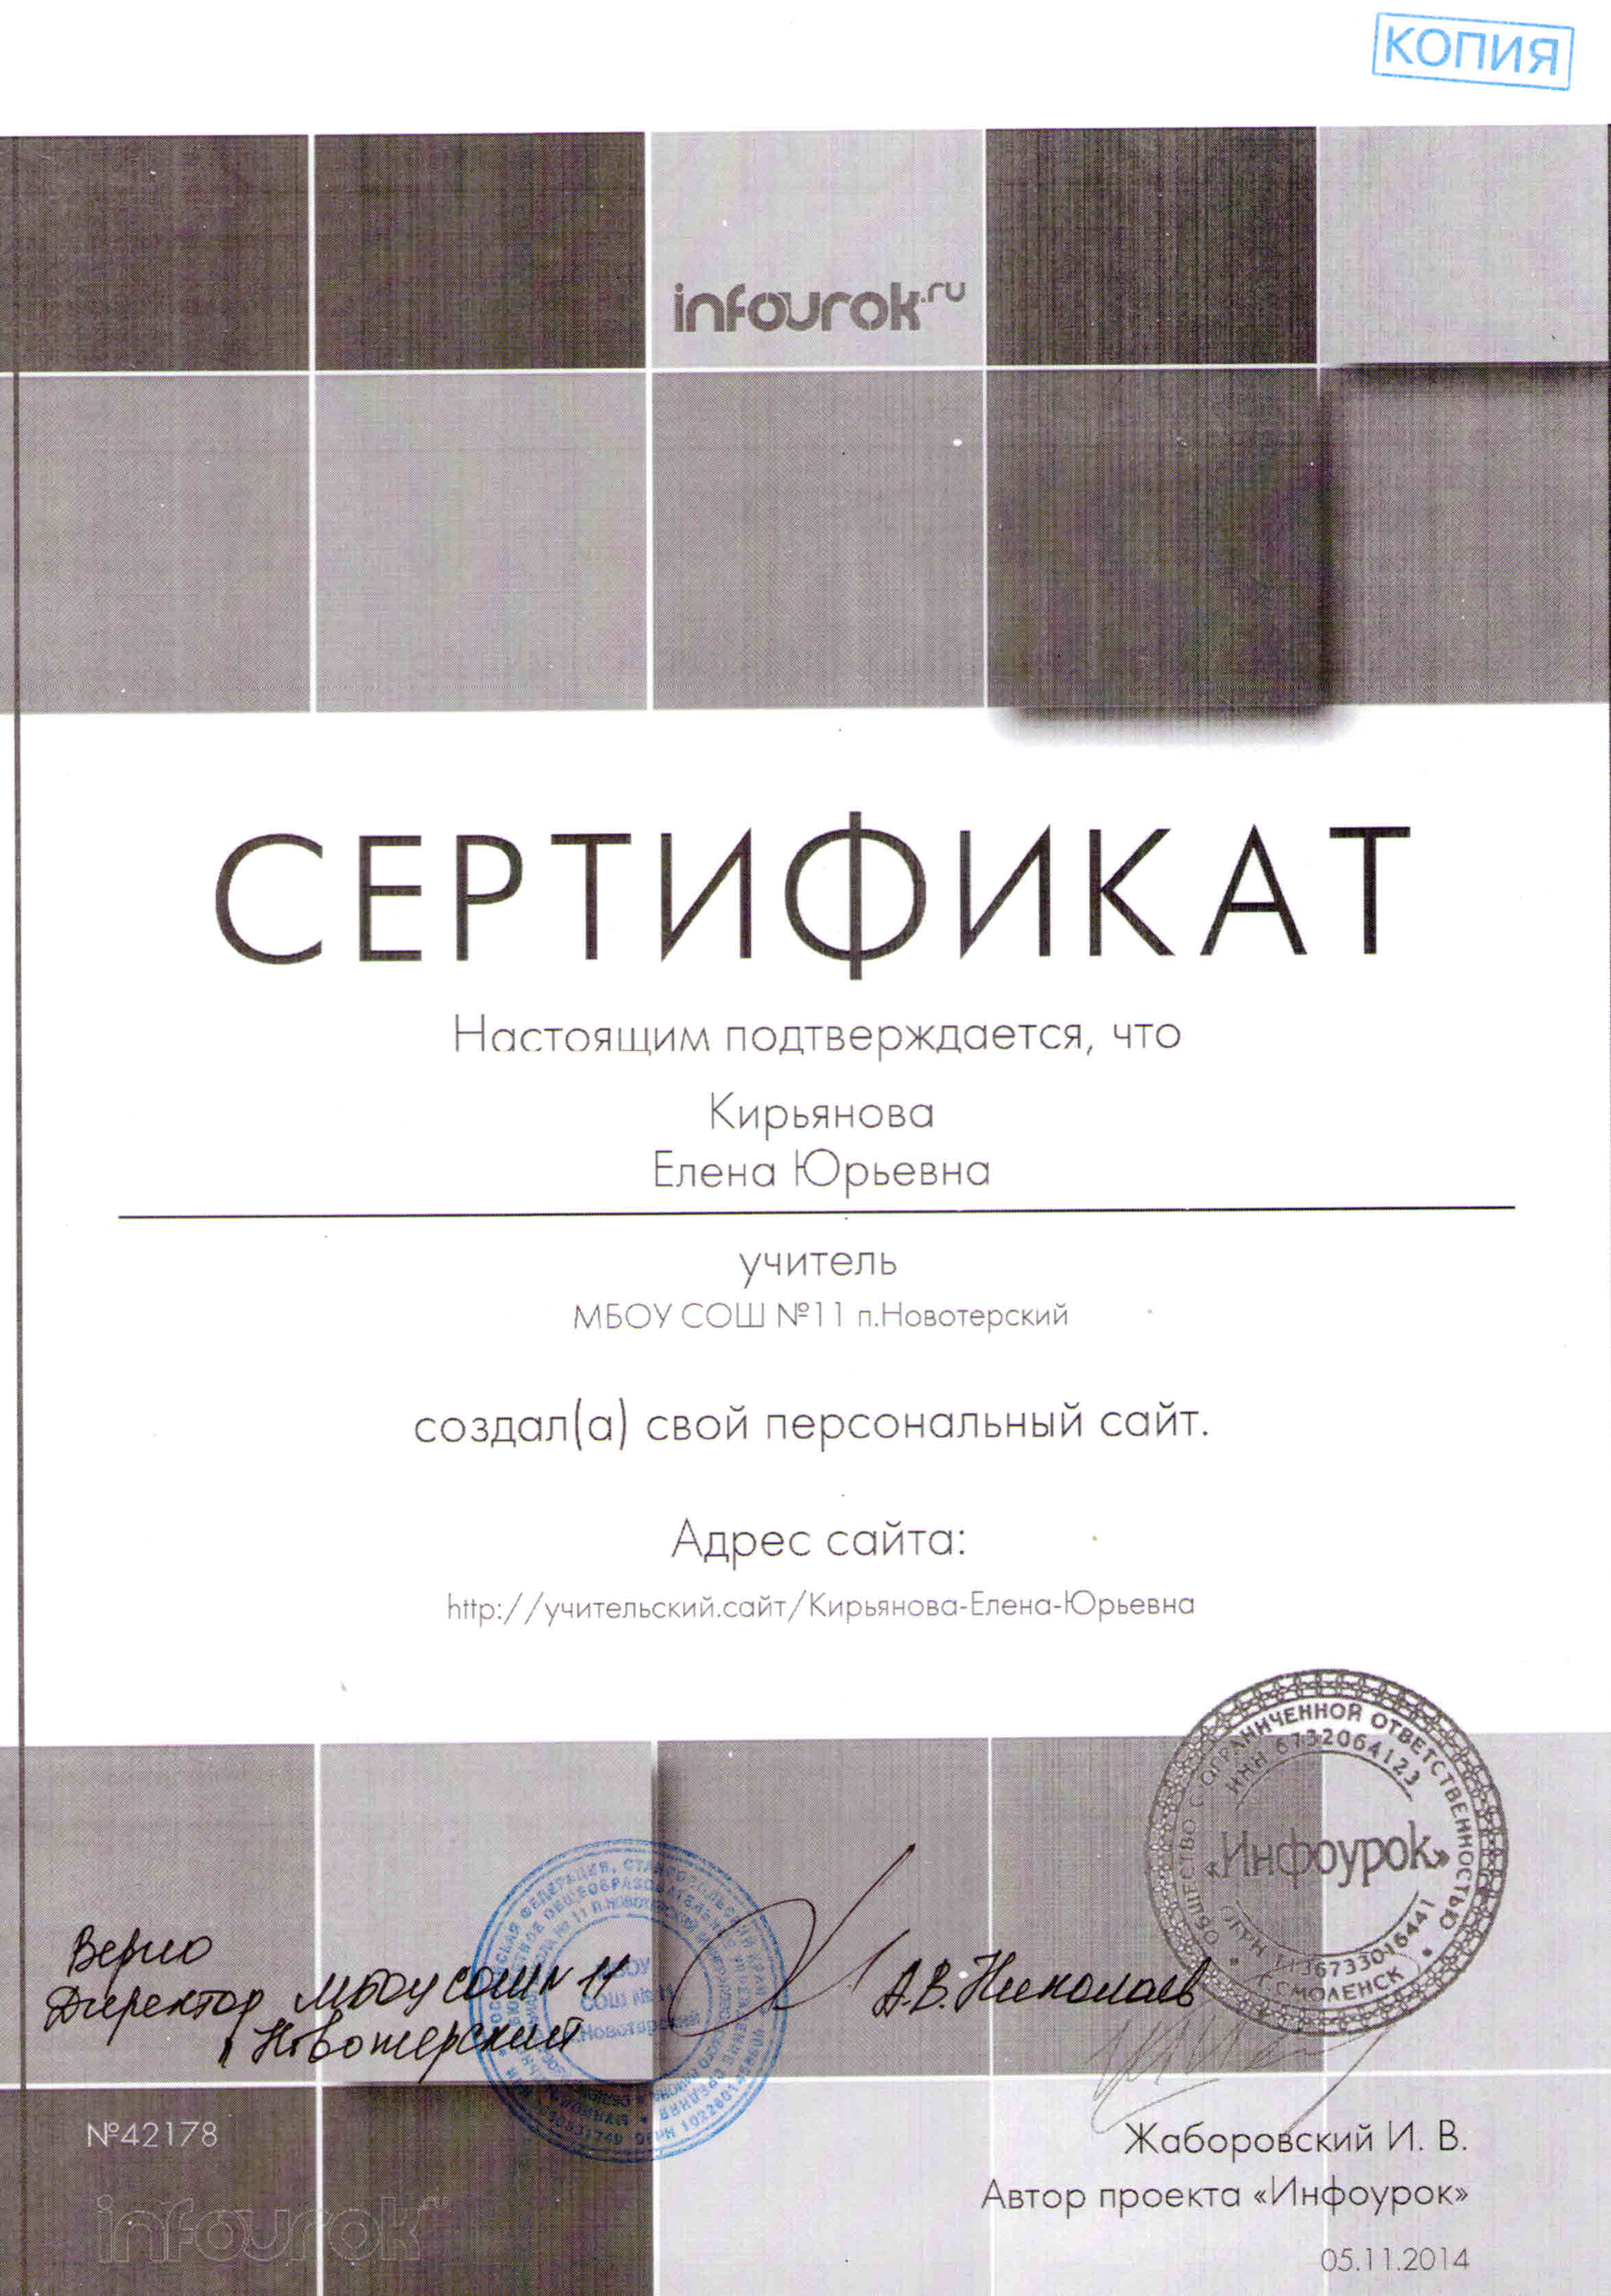 C:\Users\Сергей\Desktop\Document_30.jpg